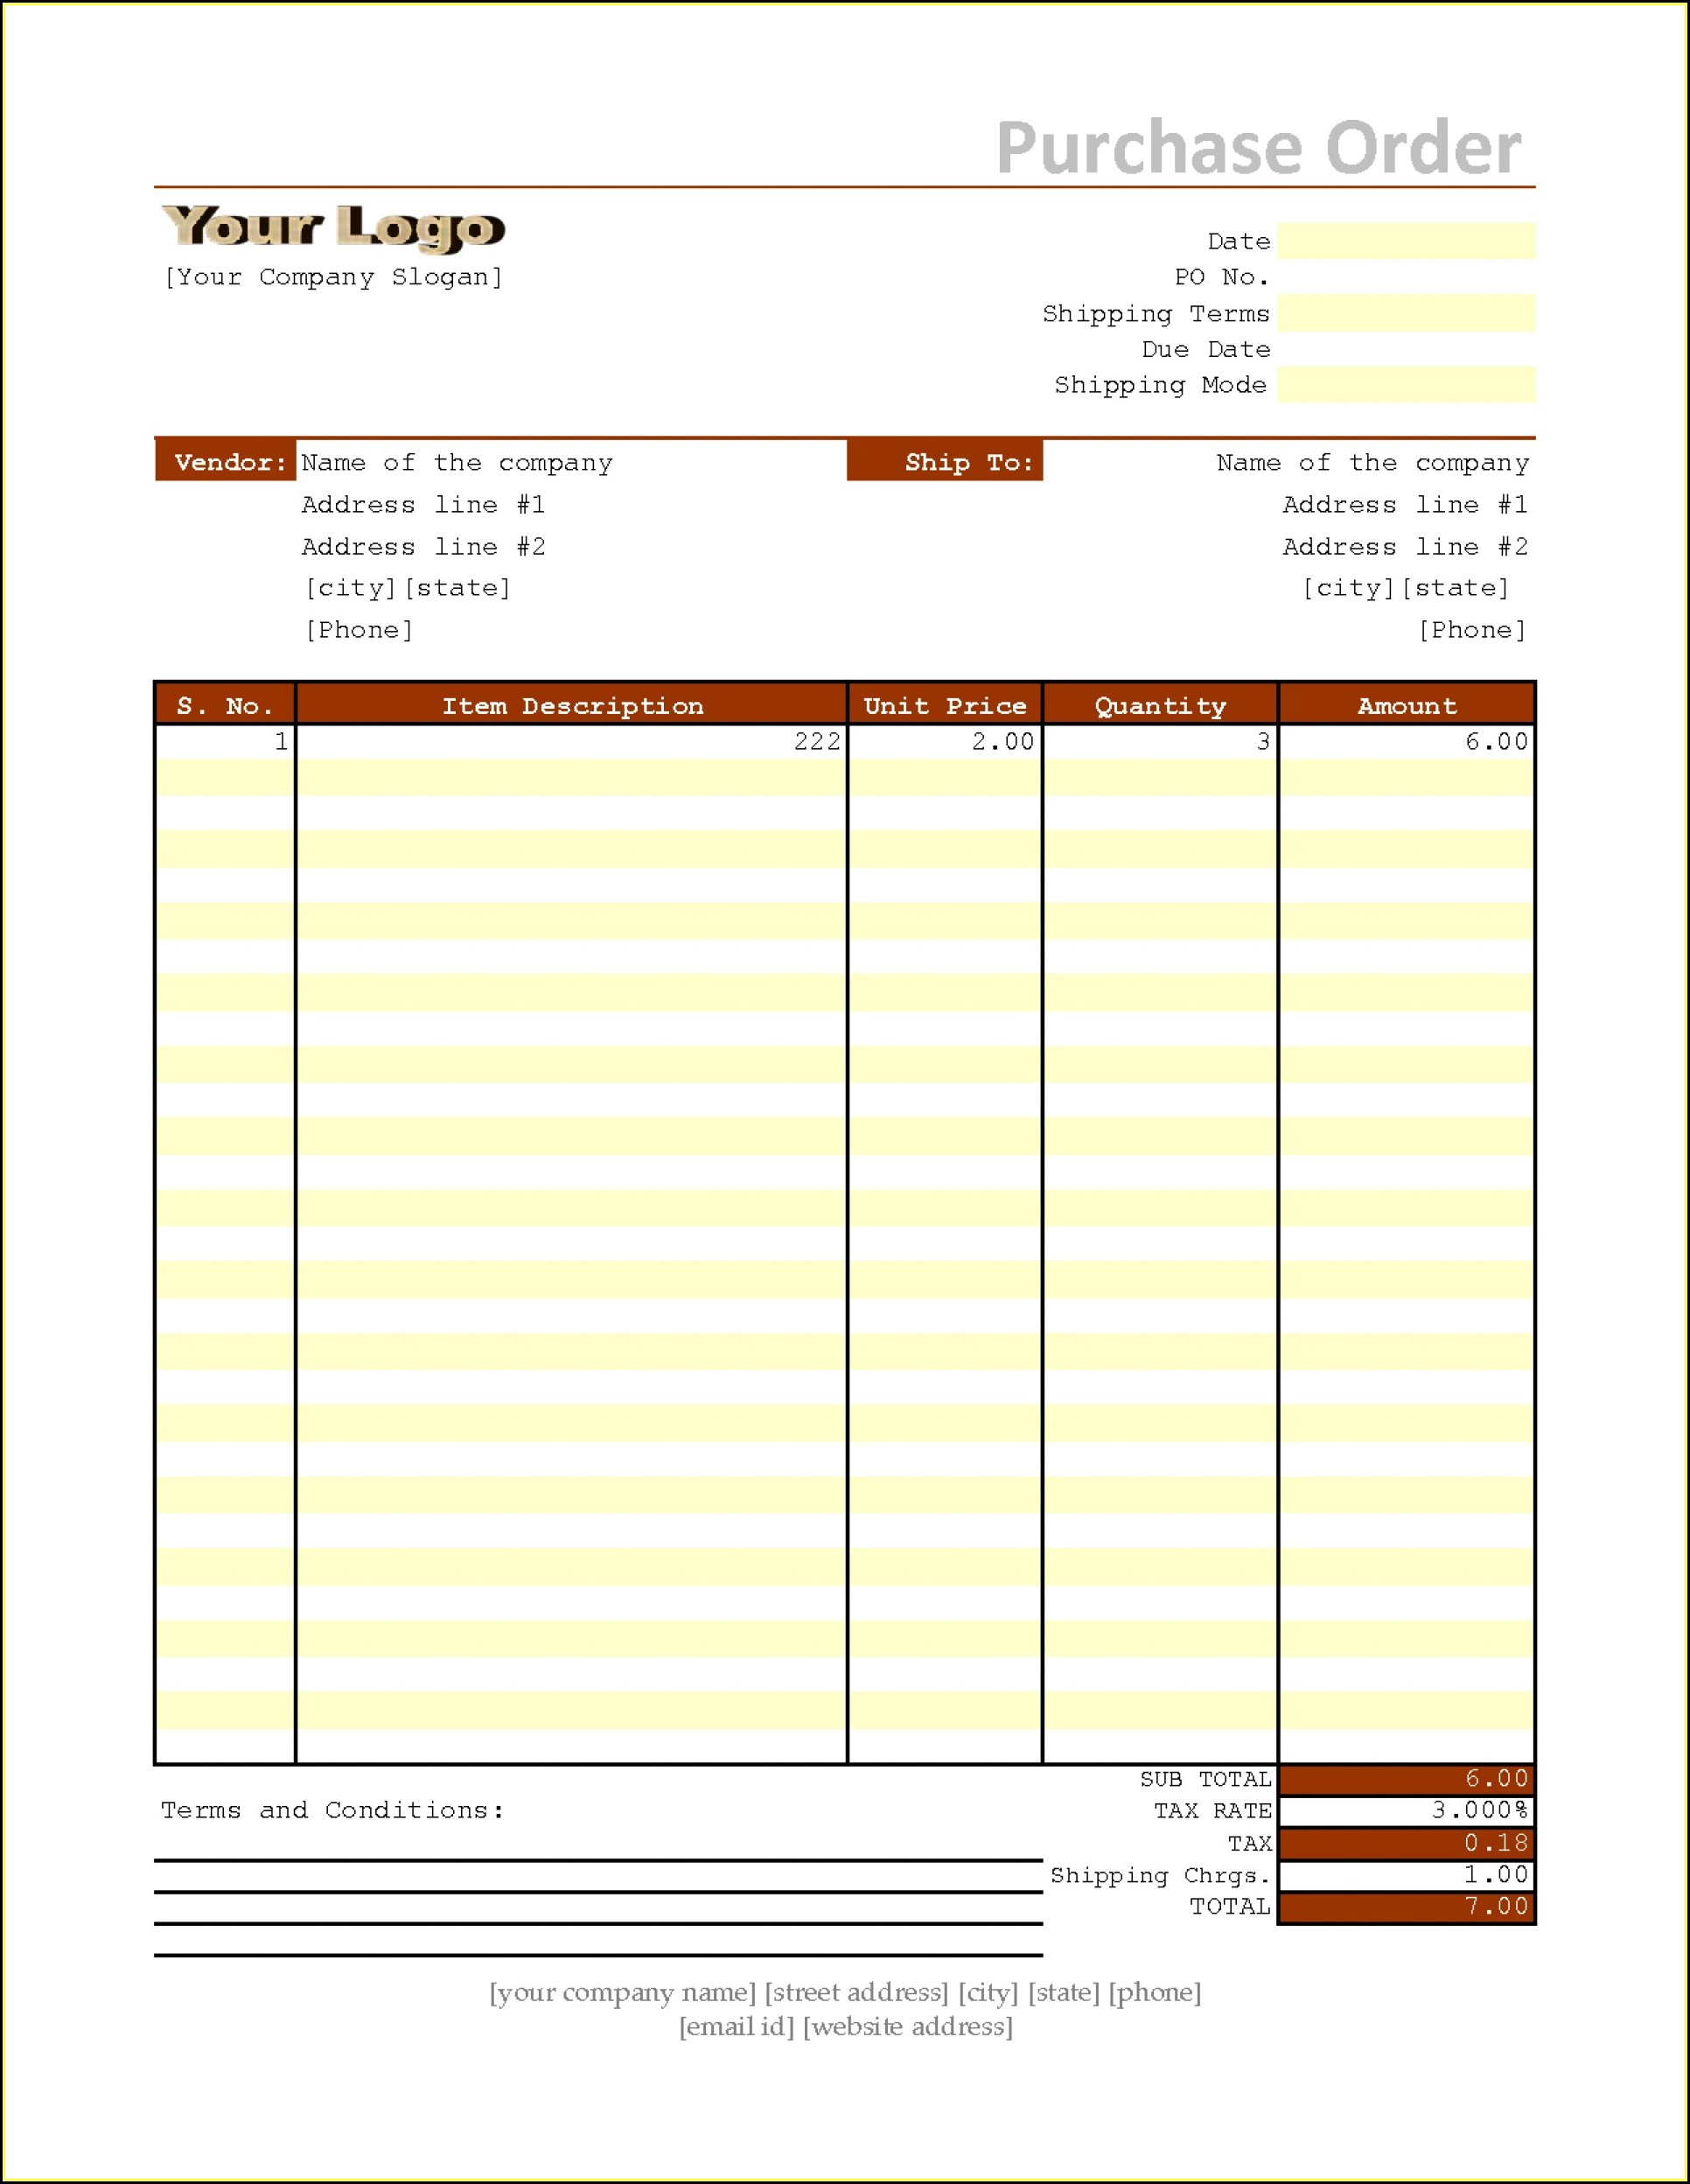 Purchase Order Sample Excel Free Download